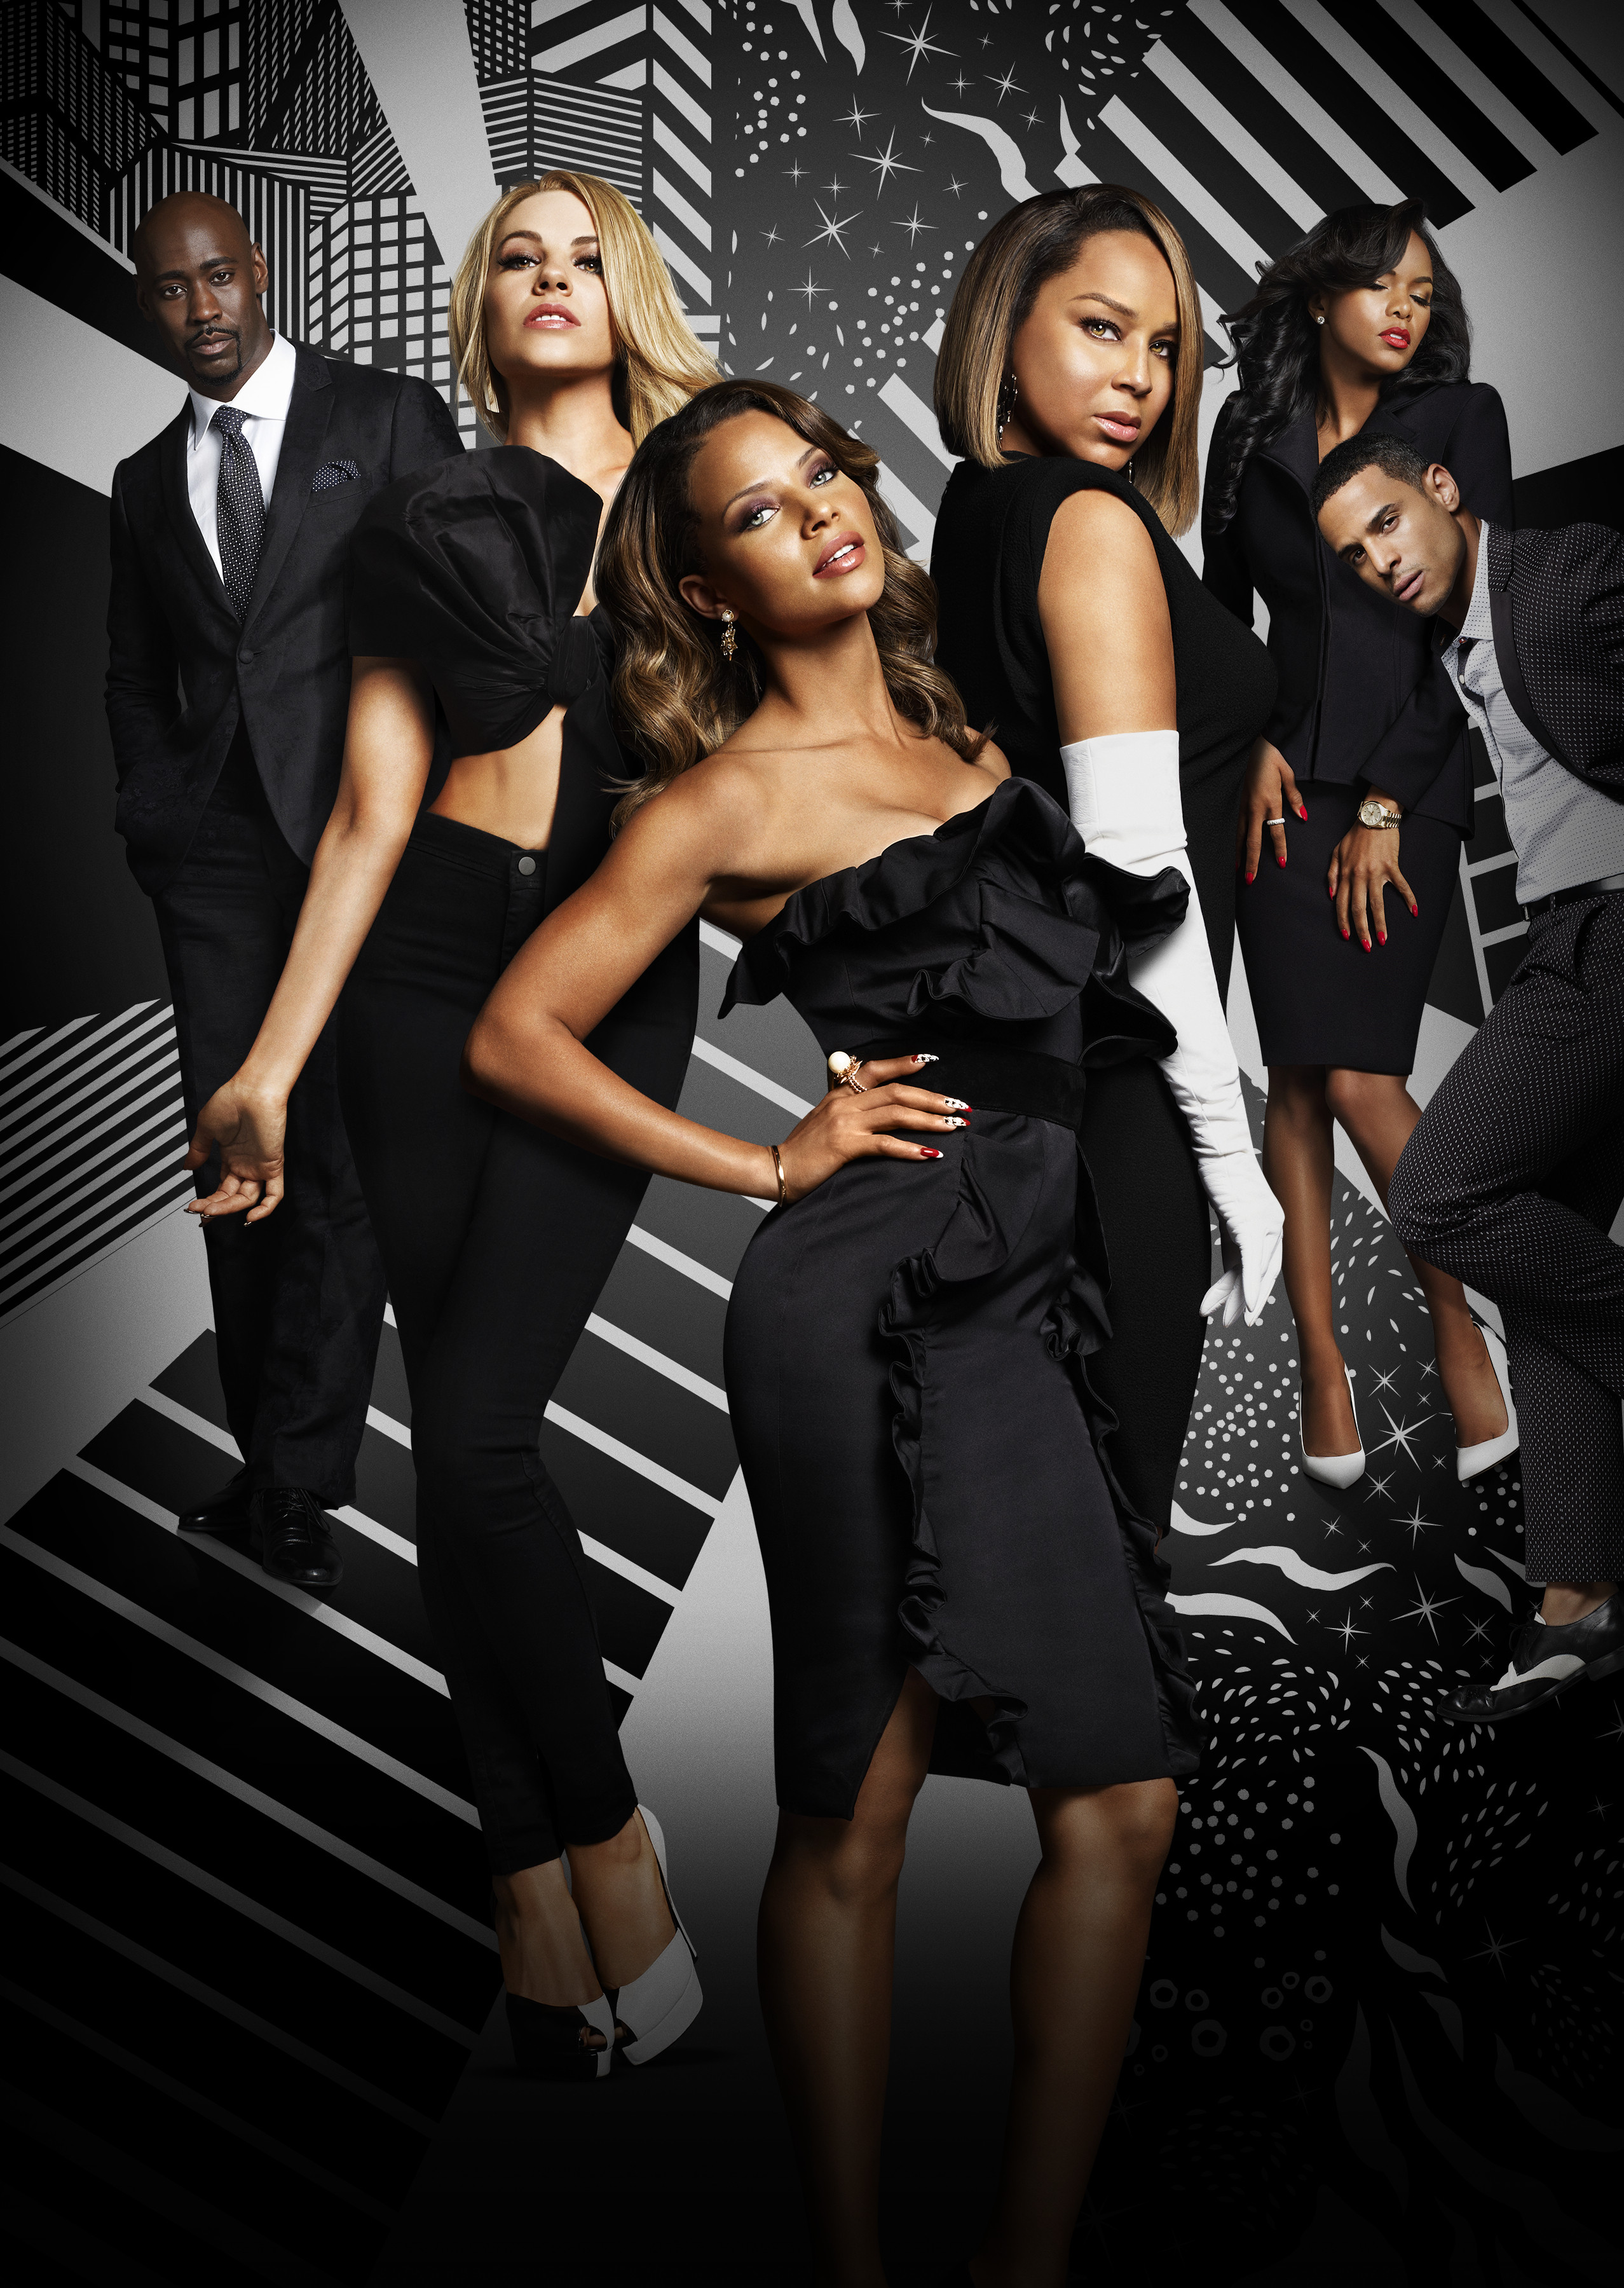 vh1 single ladies season 3